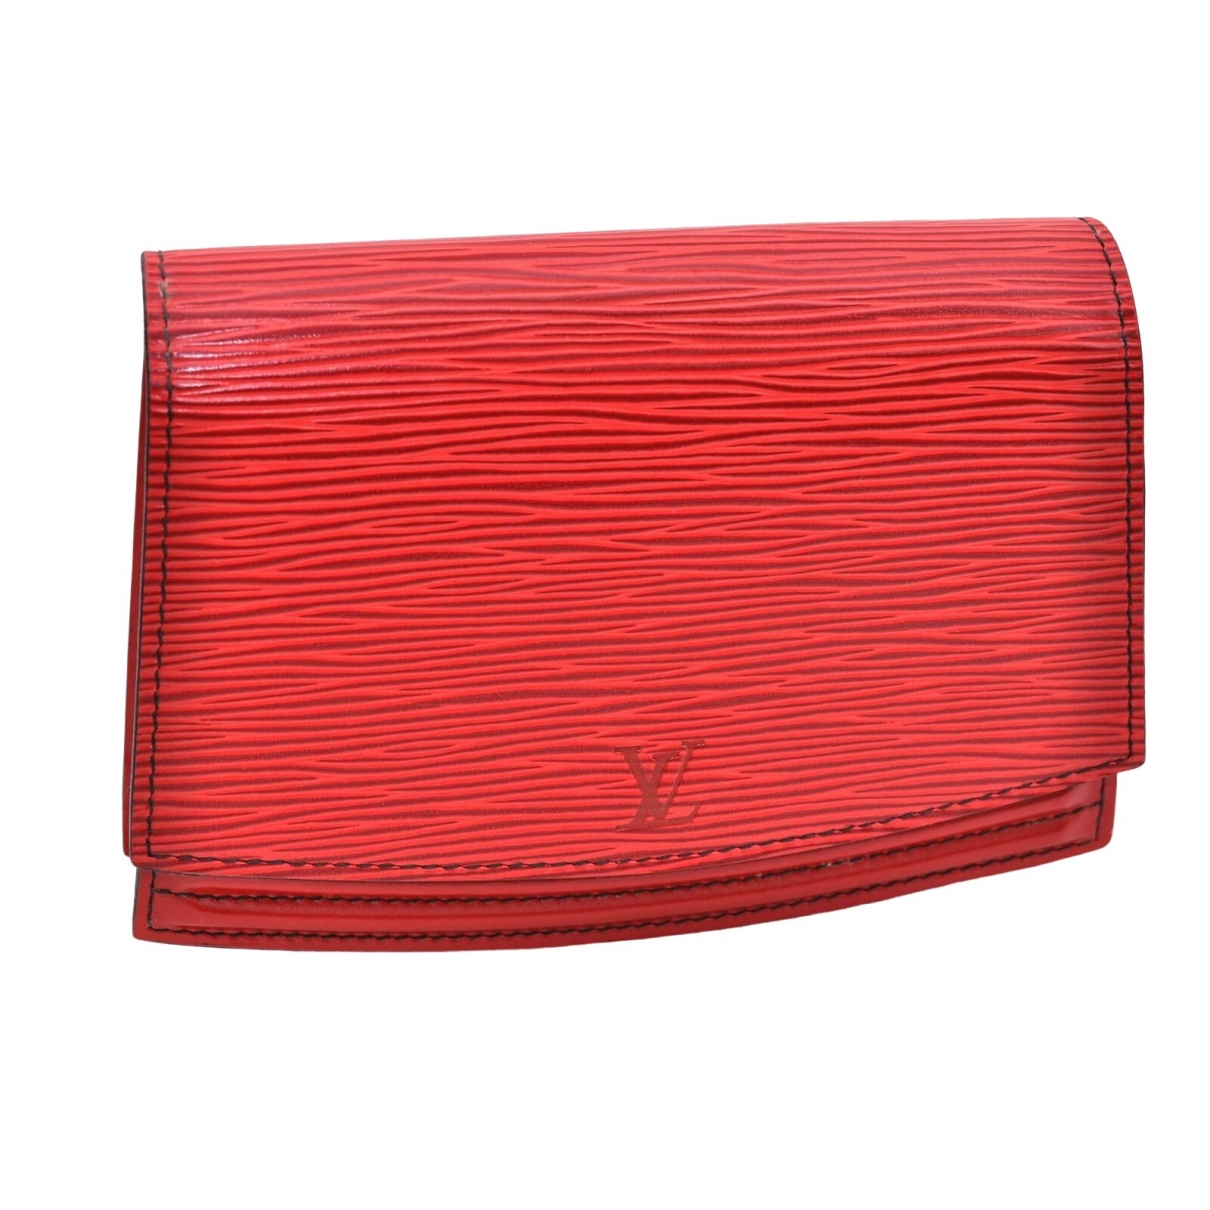 Louis Vuitton \N Red Leather handbag for Women \N